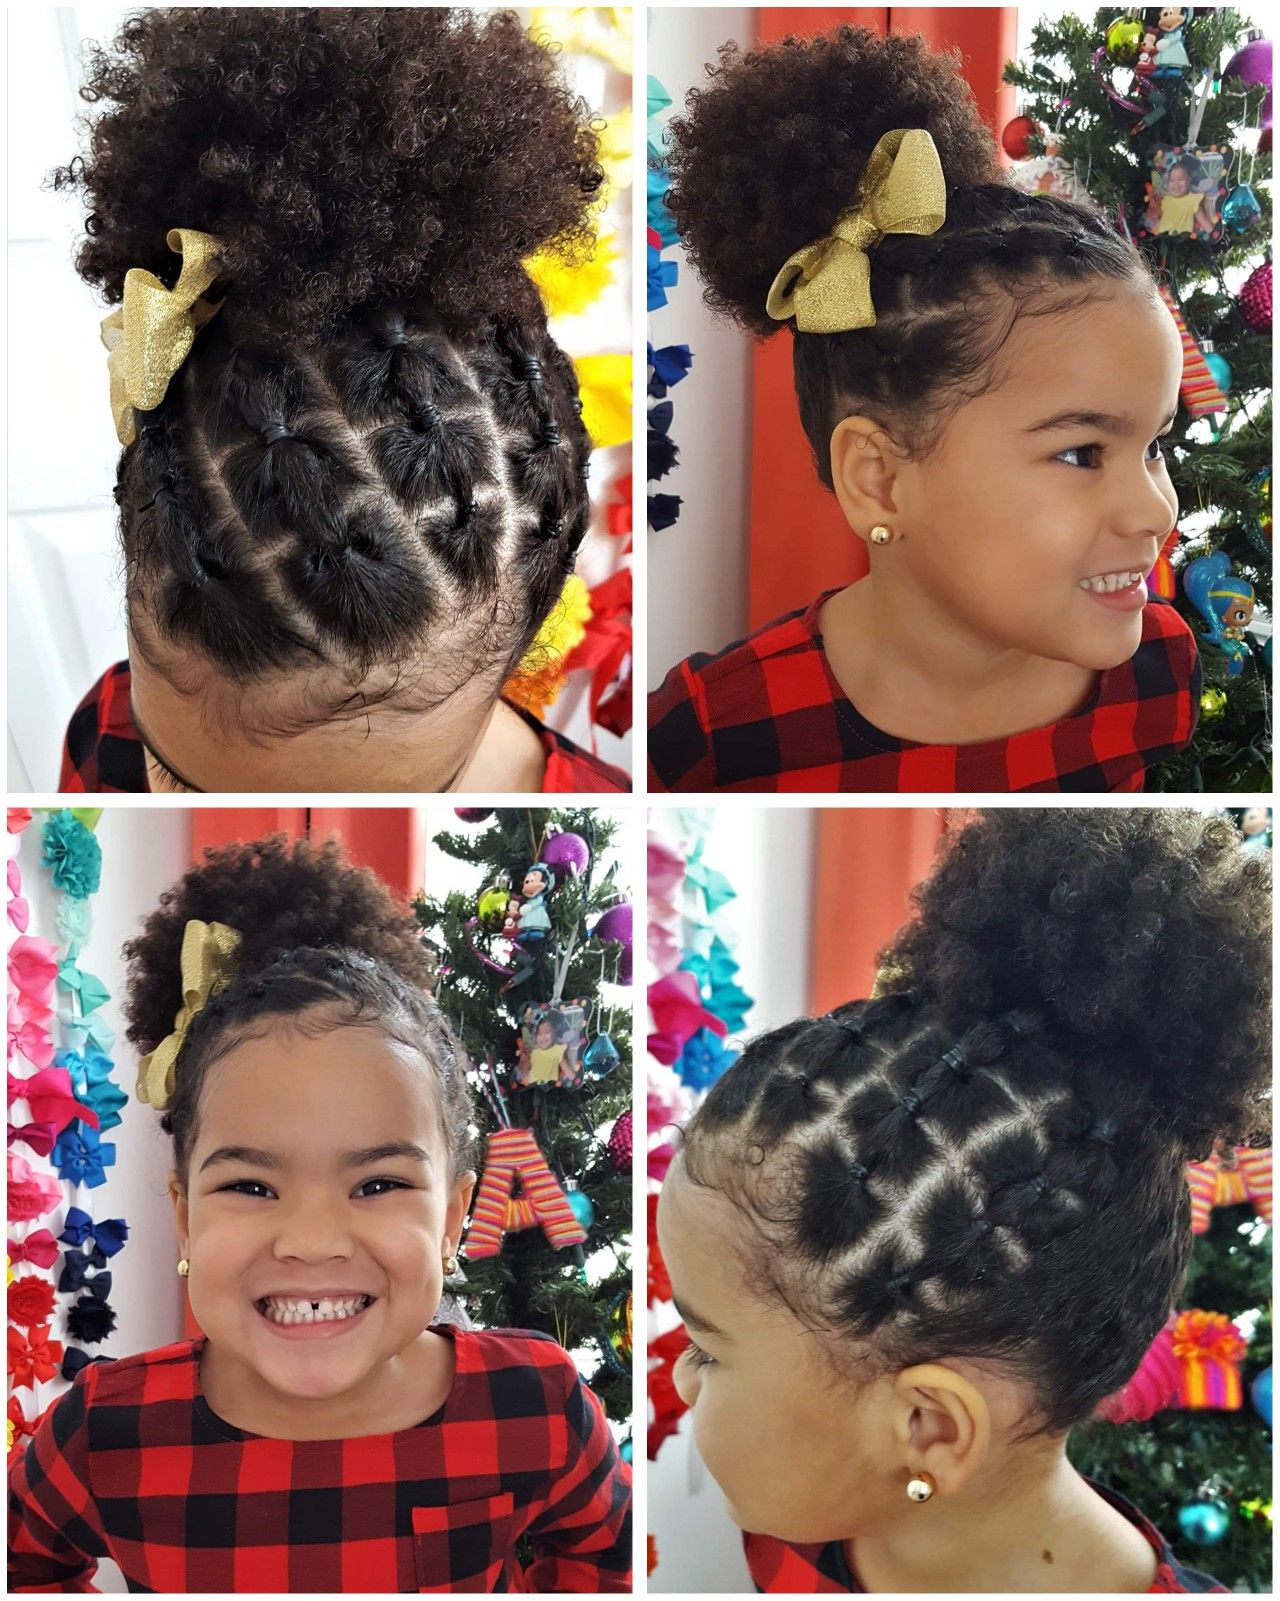 Biracial Girl Hairstyle Easy Square Parts With Rubberbands Protective Style Mixed Girl Hair Styles Mixed Girl Hairstyles Lil Girl Hairstyles